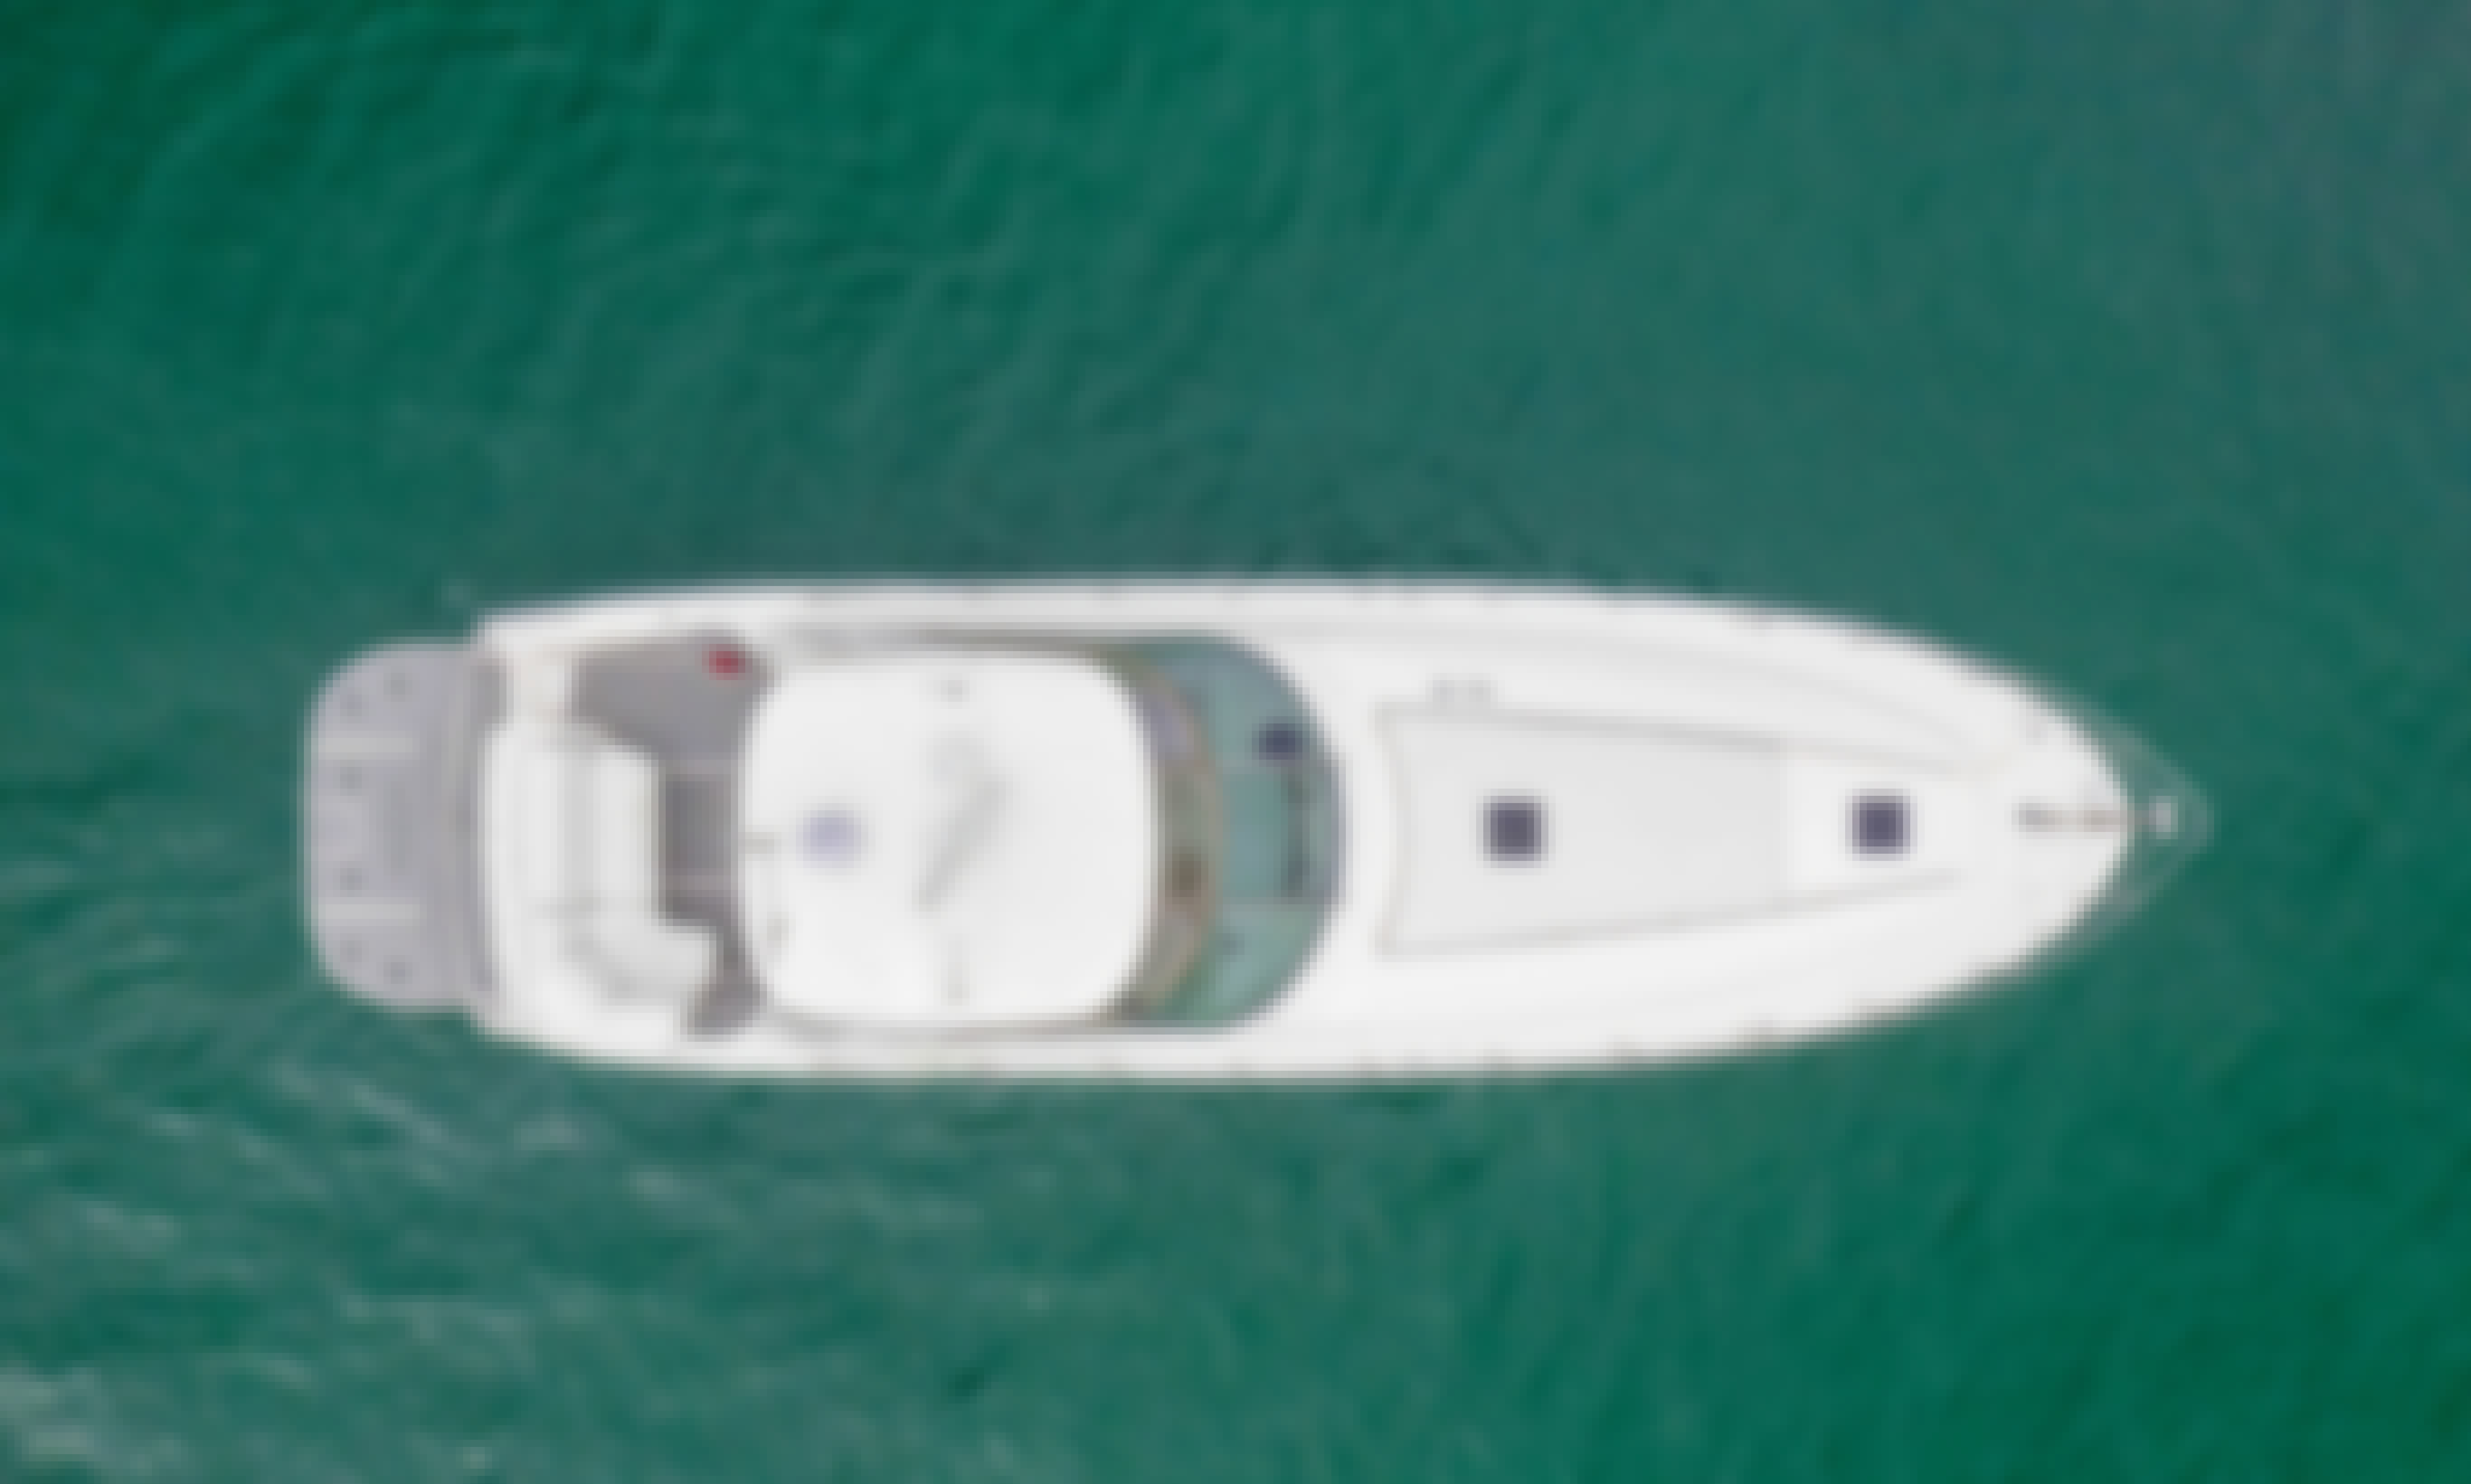 Amazing 60' Sea Ray Sundancer Yacht - massive lounge area, giant cockpit (room for 12), lots of space, AC in cabin, water toys!! $625/hr